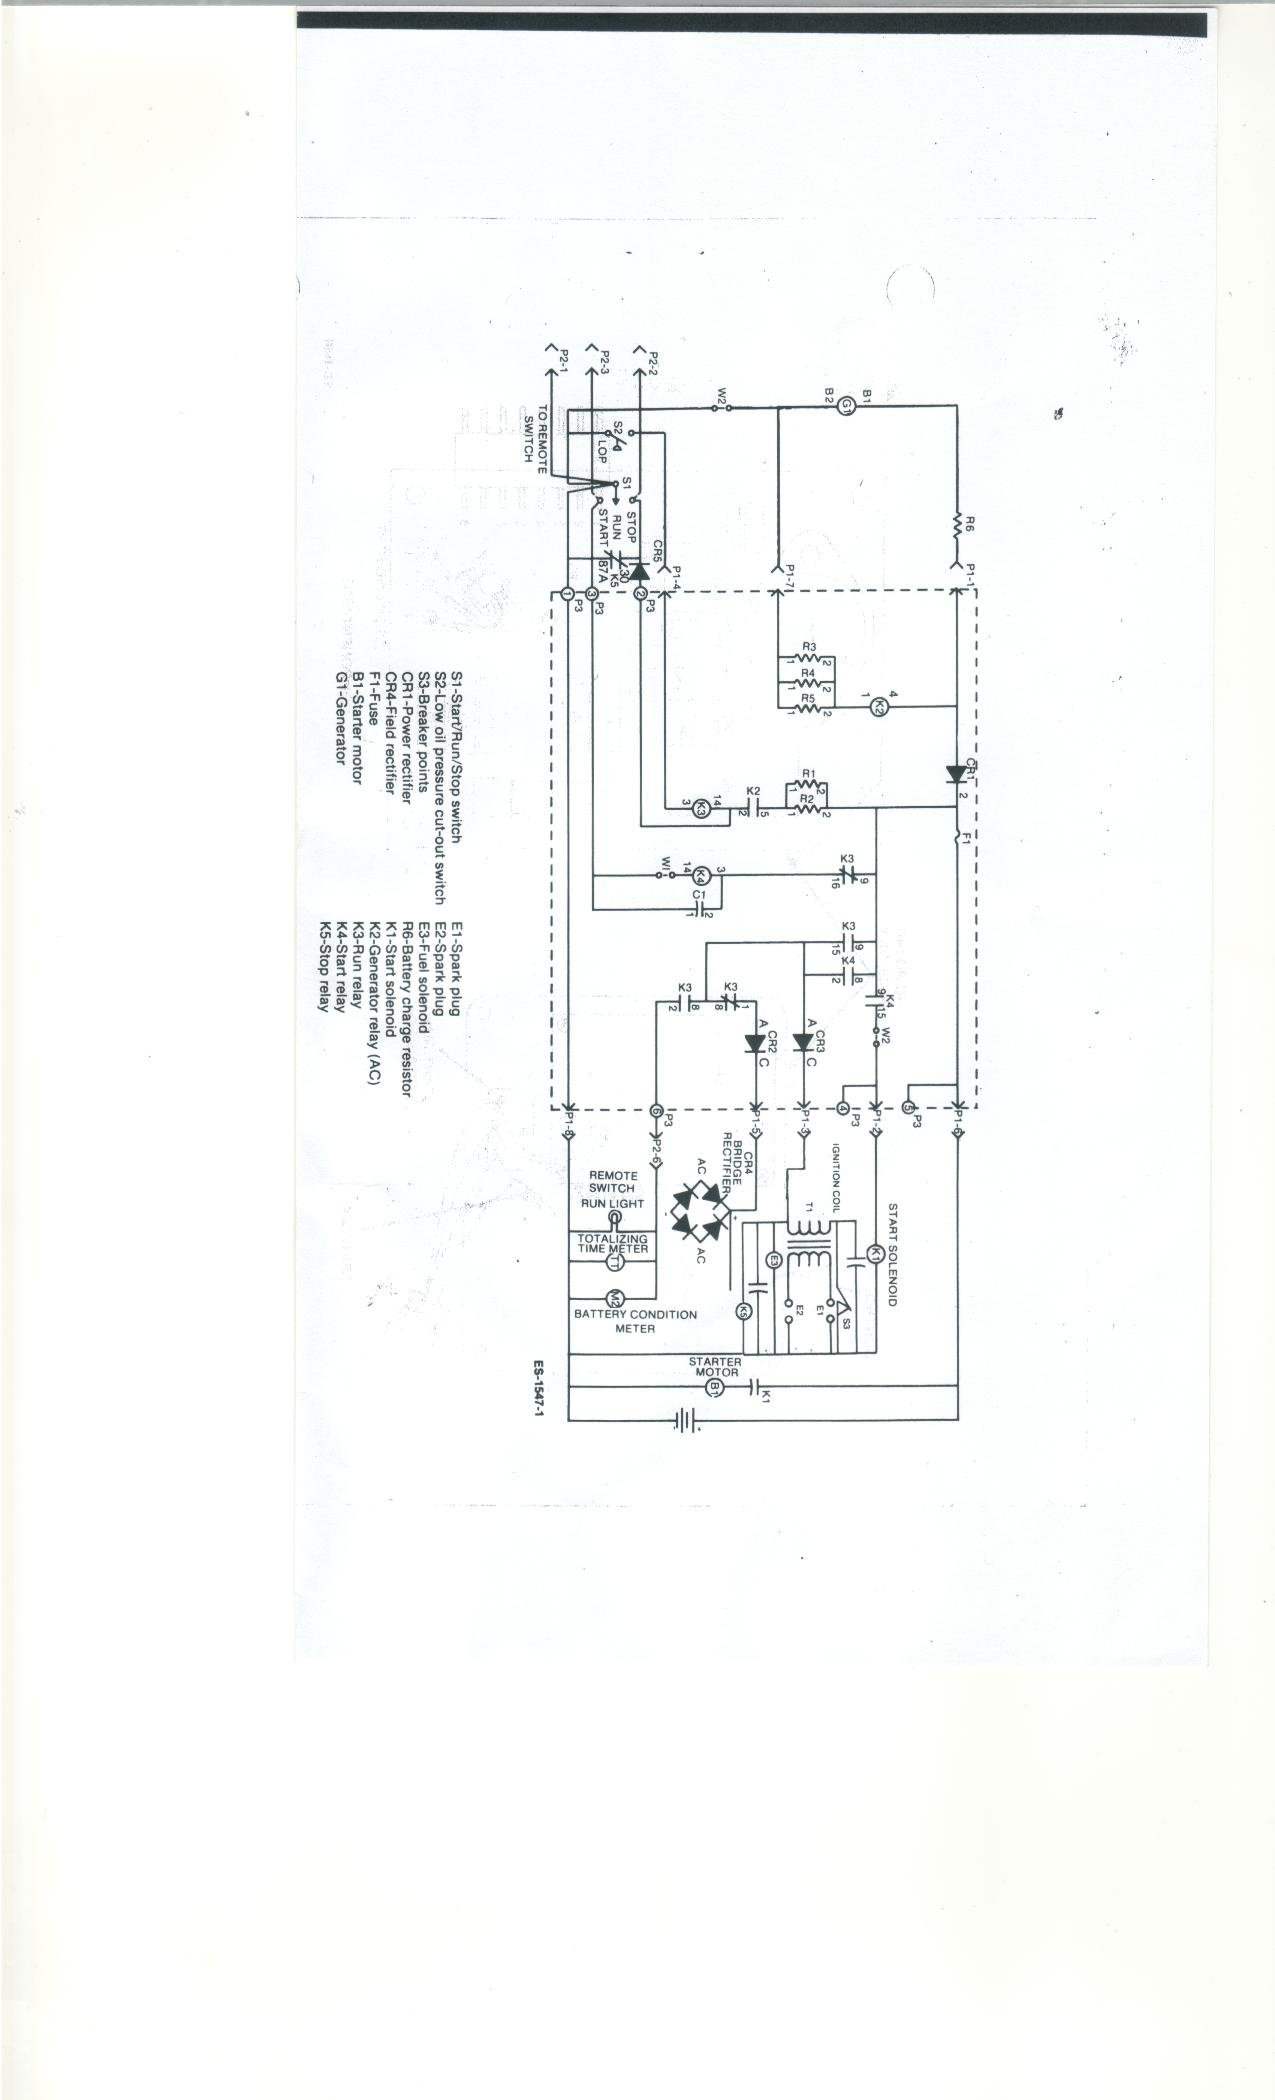 Onan Generator Wiring Diagram Wirdig For Image 6 5 Nh Automotive